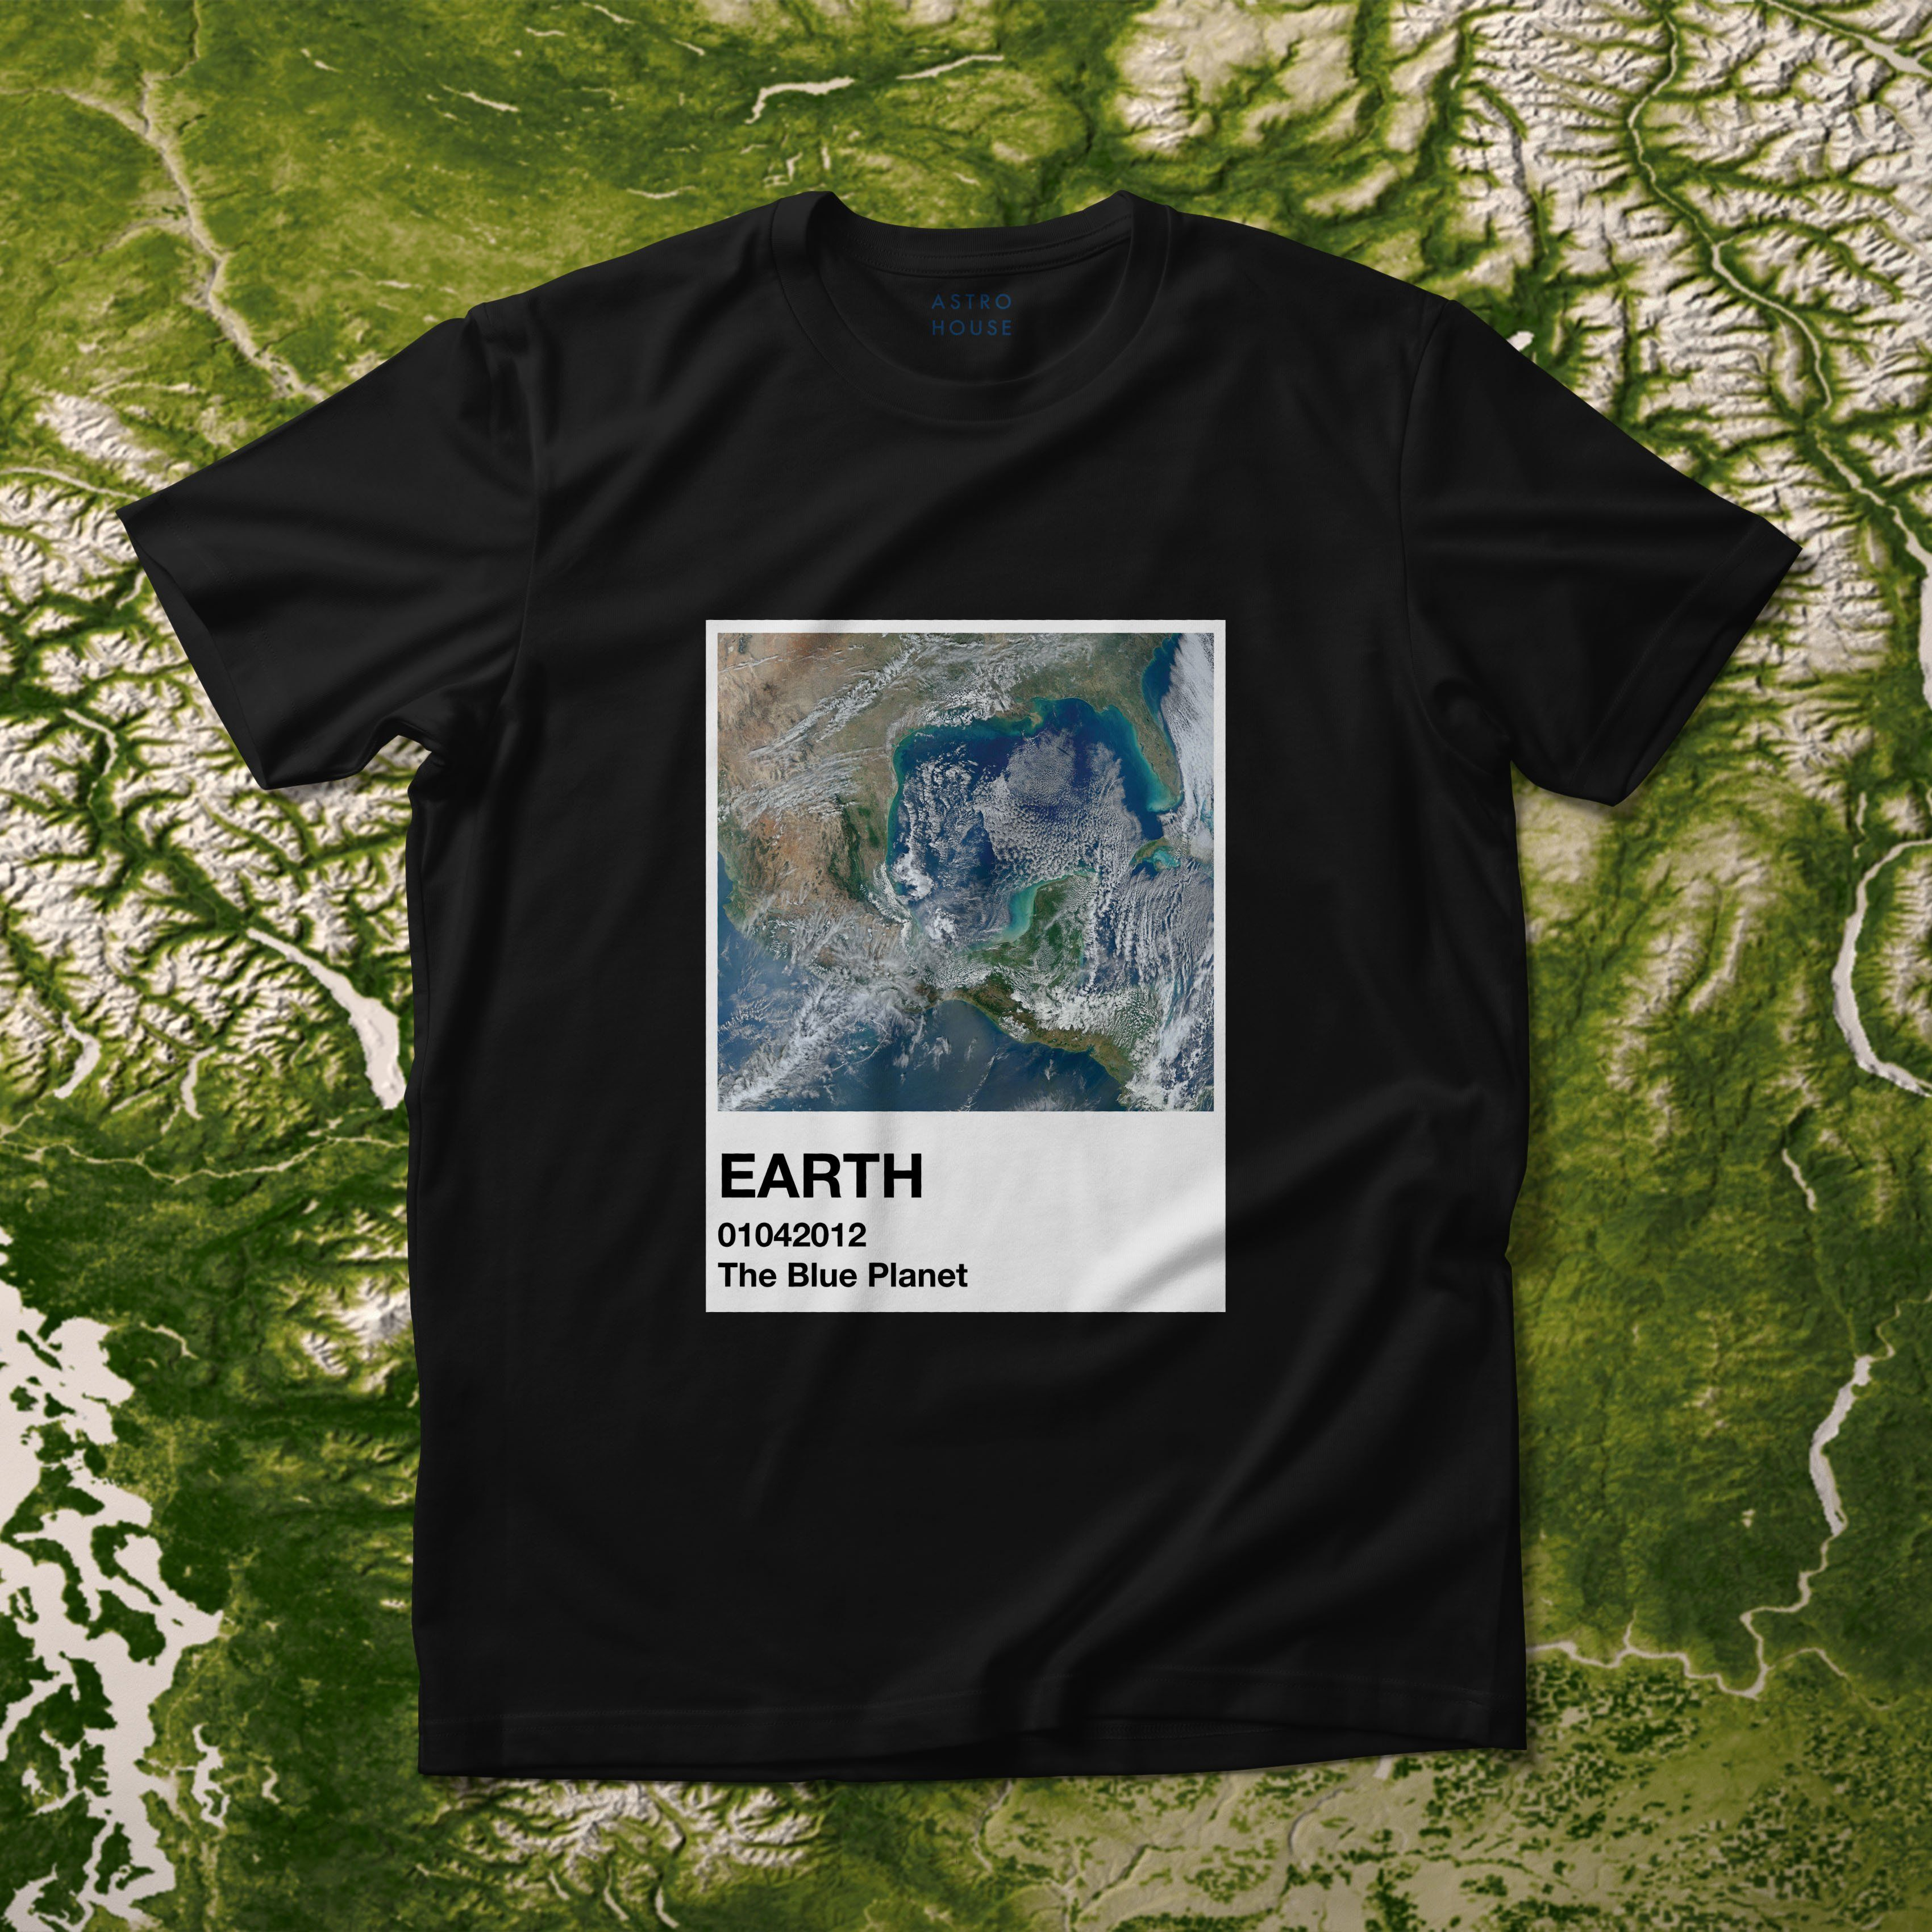 Earth - Swatch Collection Shirt - M